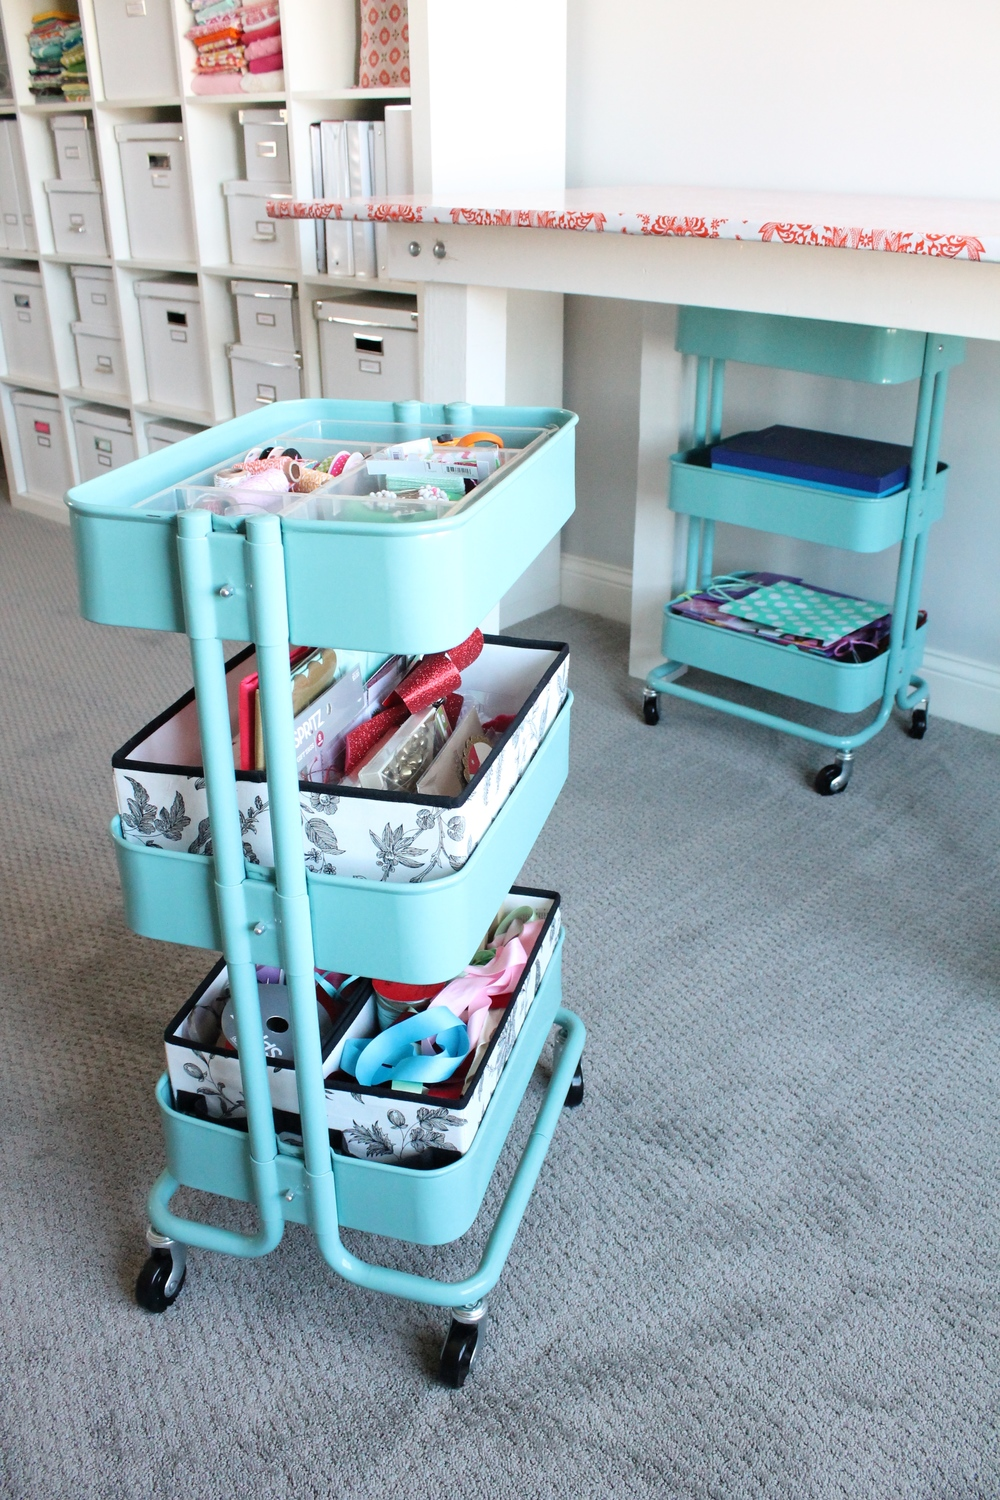 Aqua rolling carts from Ikea. Perfect place to organize supplies for the craft room.